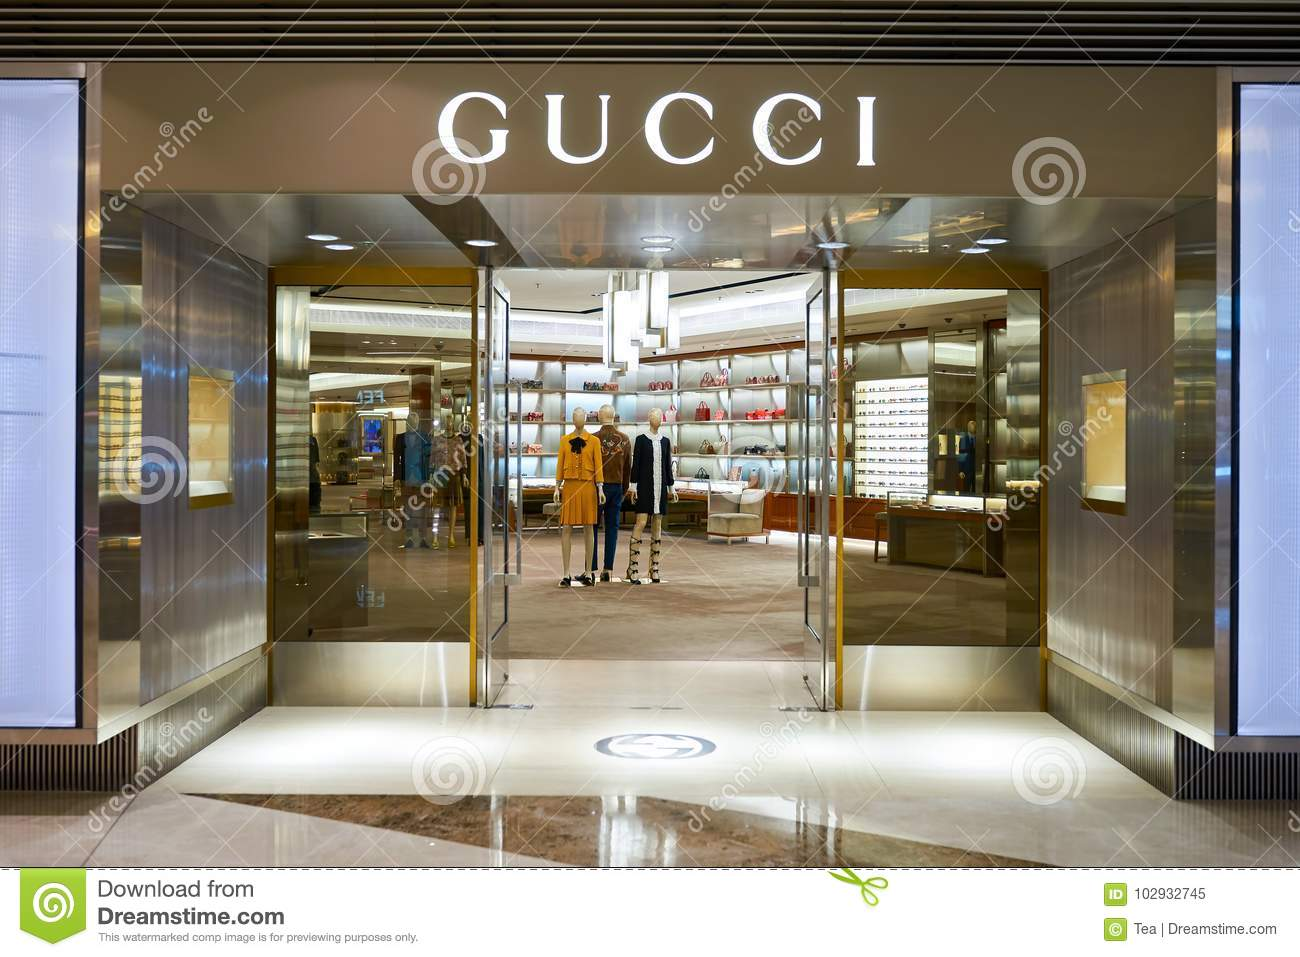 65ae947bda23a5 Elements Shopping Mall editorial image. Image of gucci - 102932745